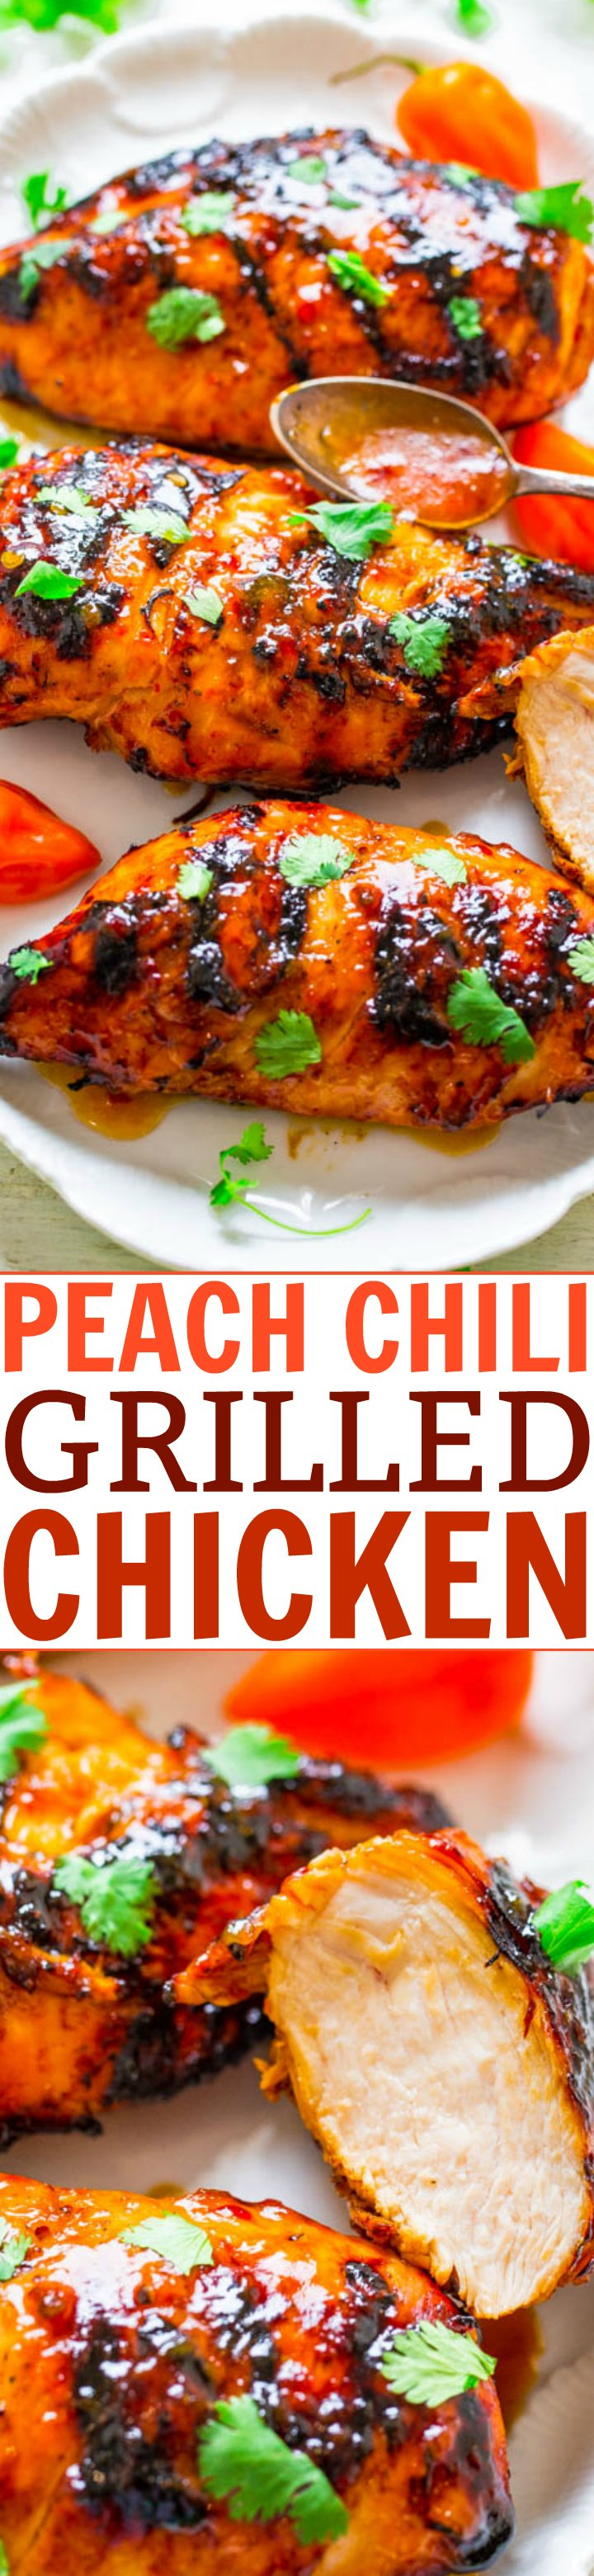 Peach Chili Grilled Chicken -Tender, juicy, and full of FLAVOR from the sweet peach preserves and chili garlic sauce!! The perfect contrast! EASY, healthy, ready in 10 minutes, zero cleanup, perfect for backyard barbecues or easy weeknight dinners!!